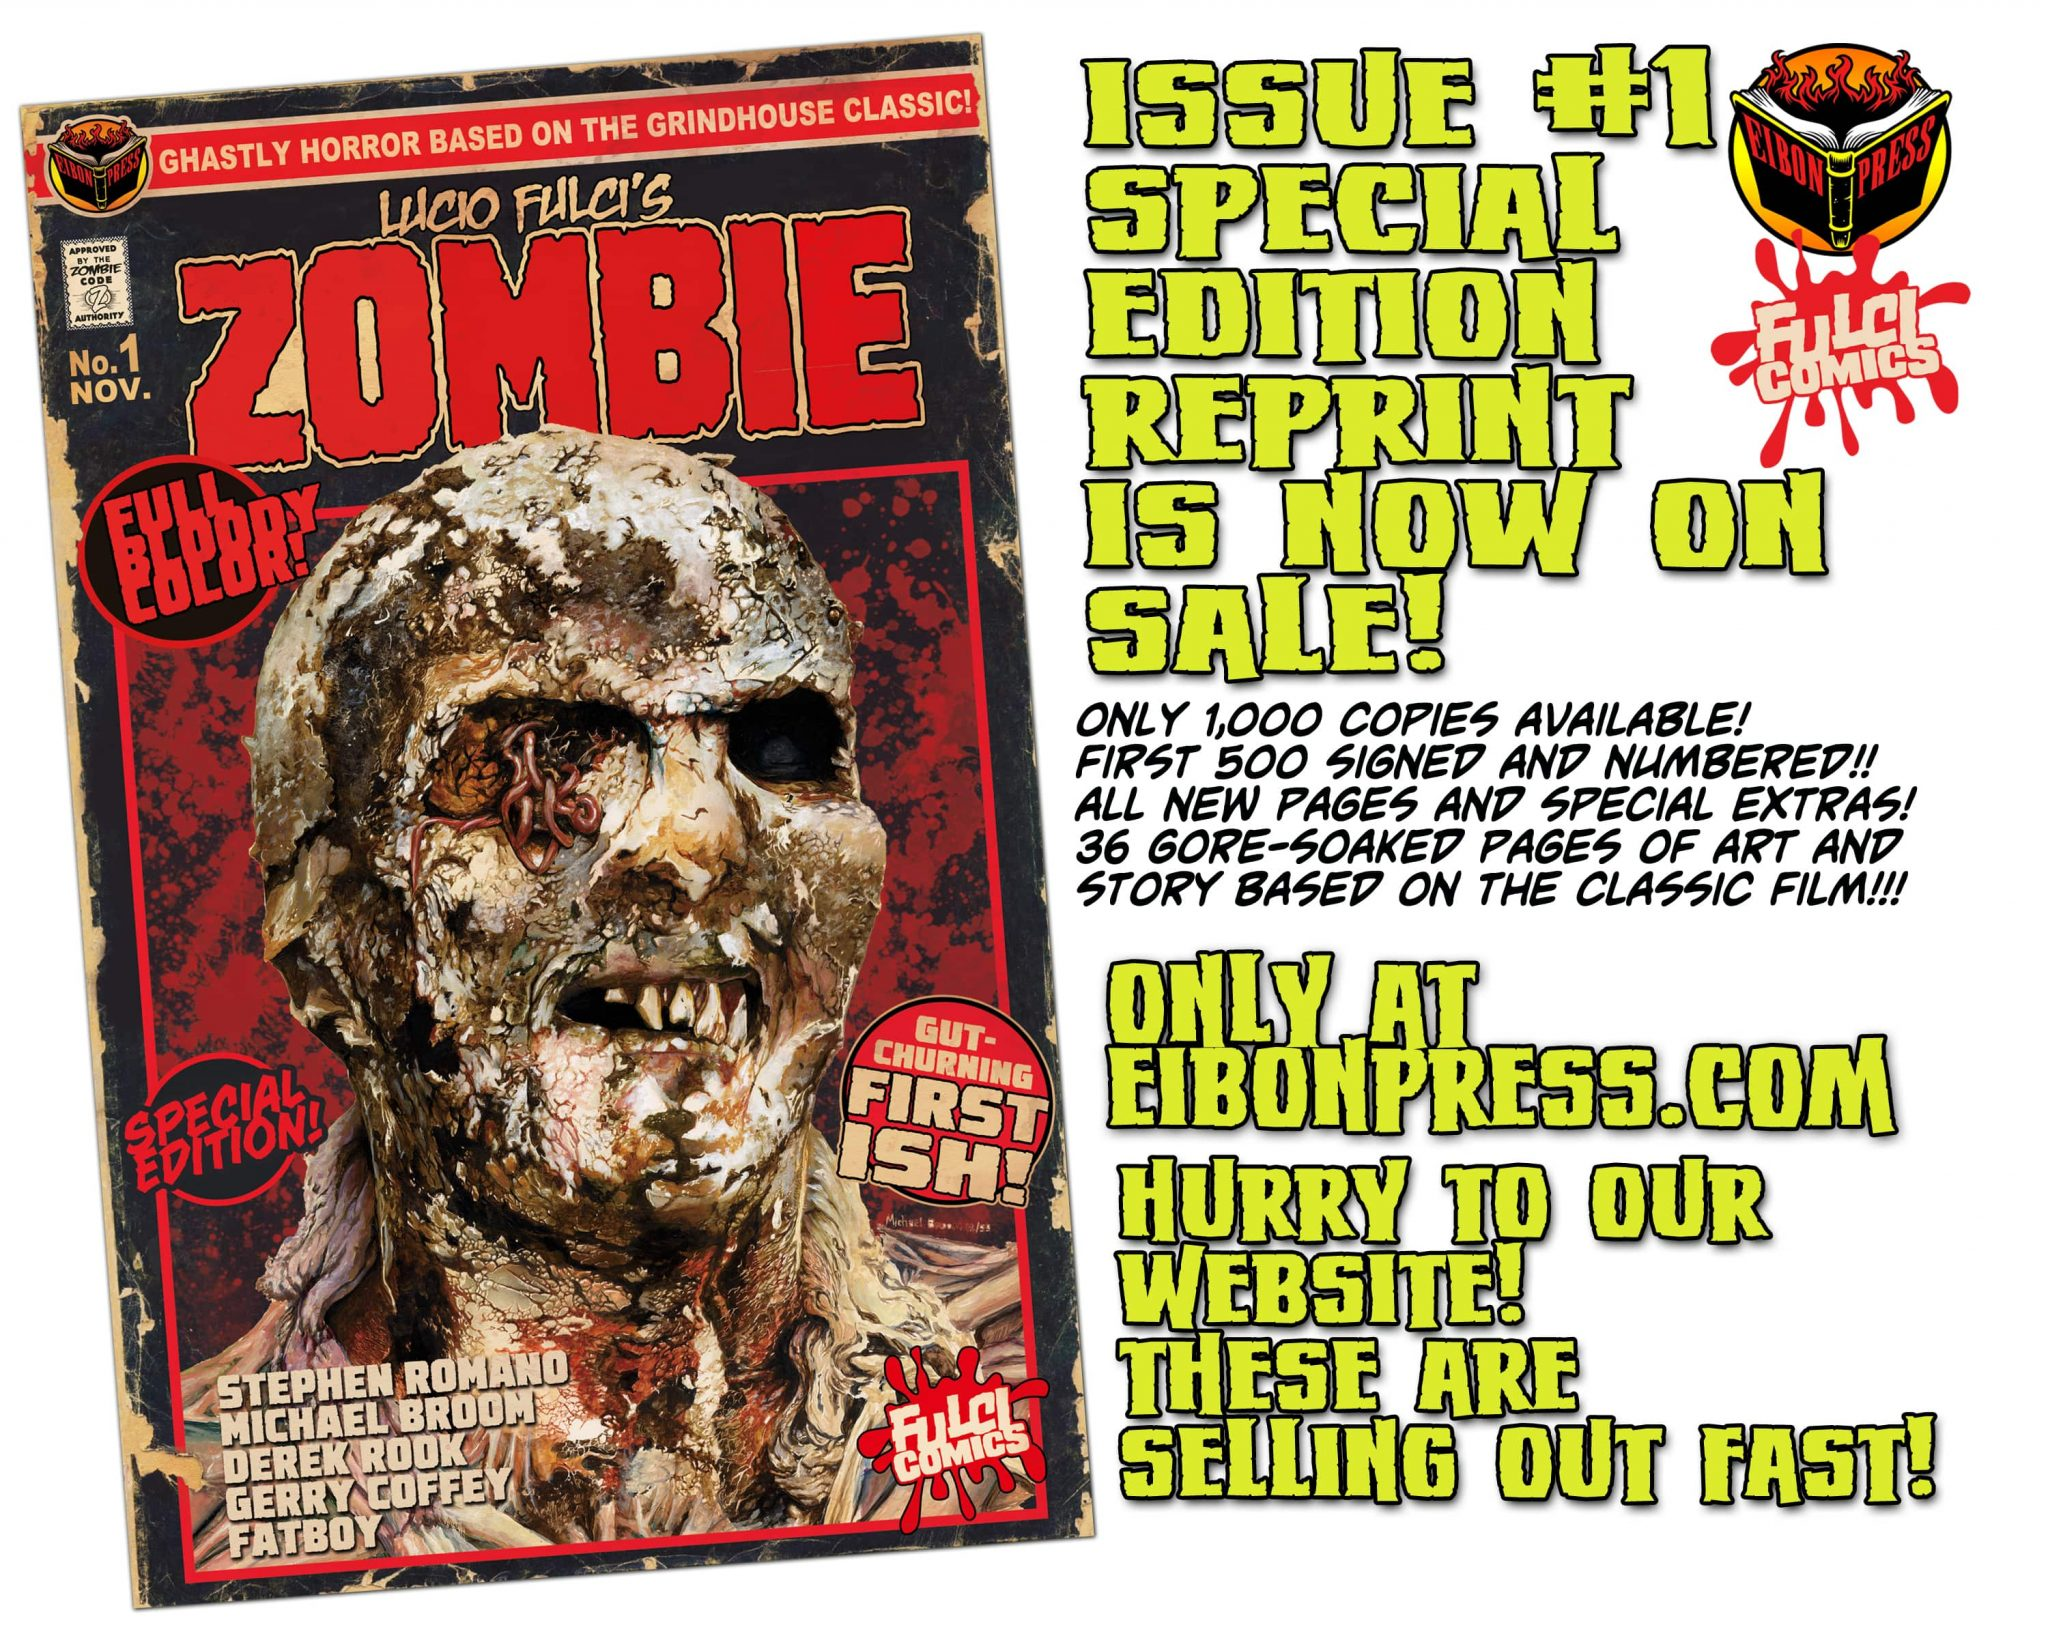 ZOMBIE NOW ON SALE min - LUCIO FULCI'S ZOMBIE #1 REPRINT NOW ON SALE!